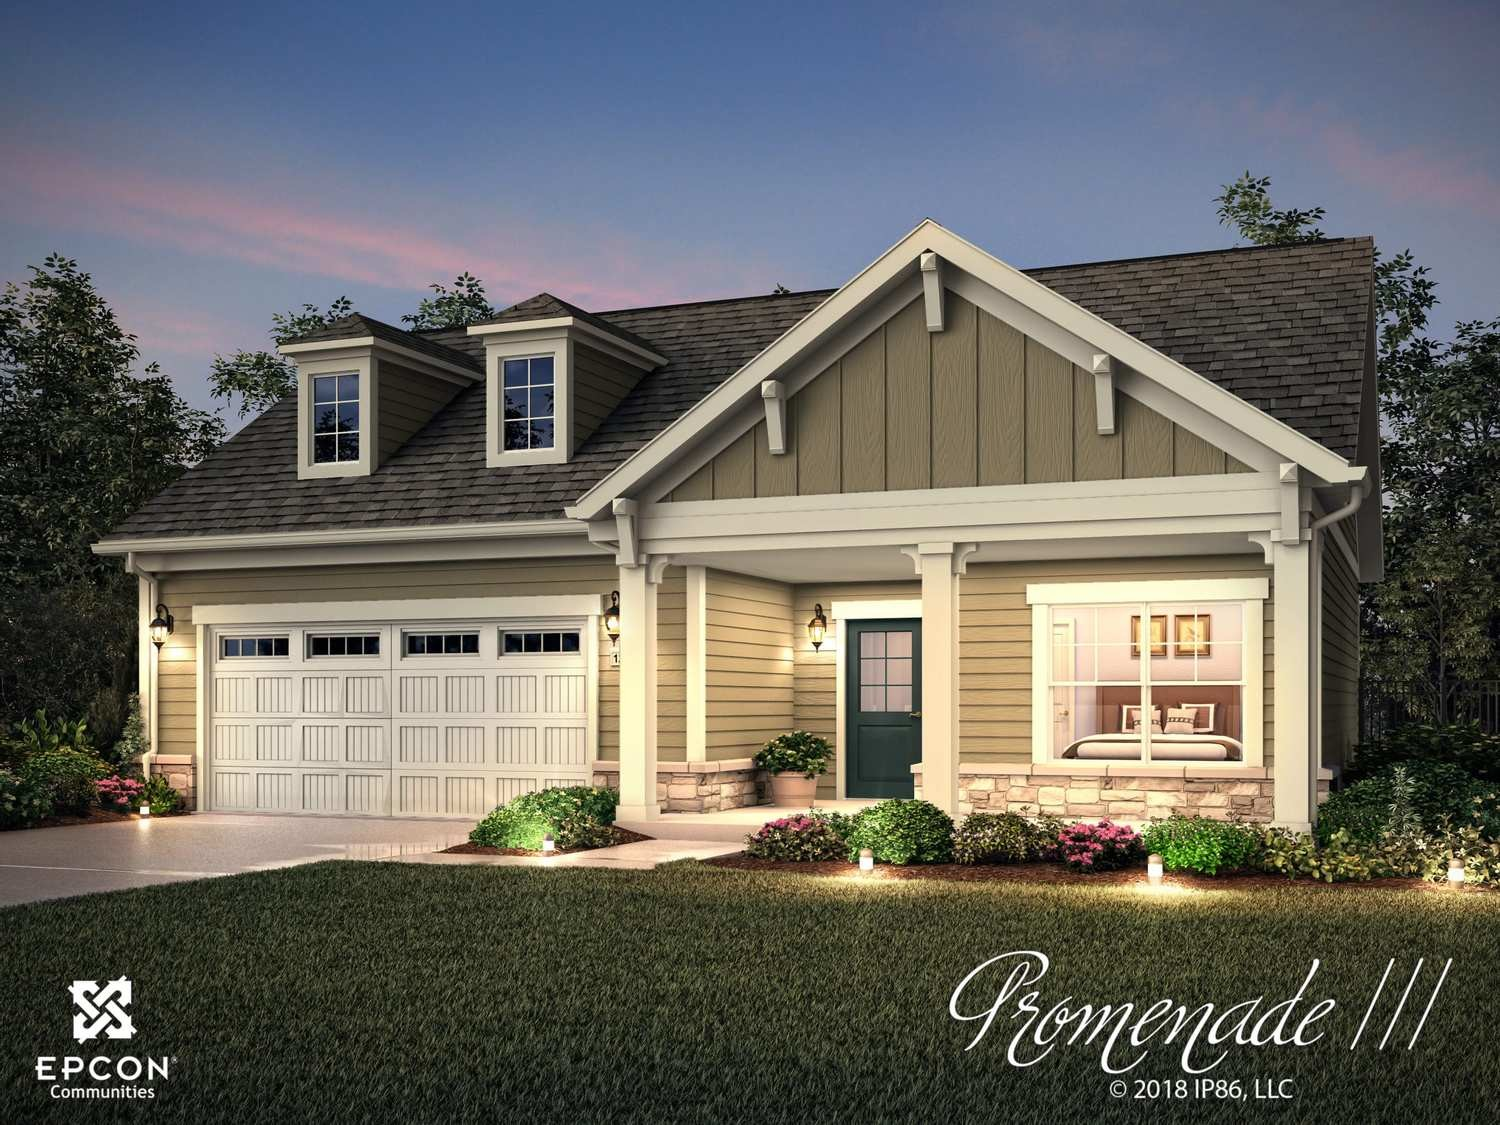 Move In Ready New Home In The Courtyards on Hyland Run Community